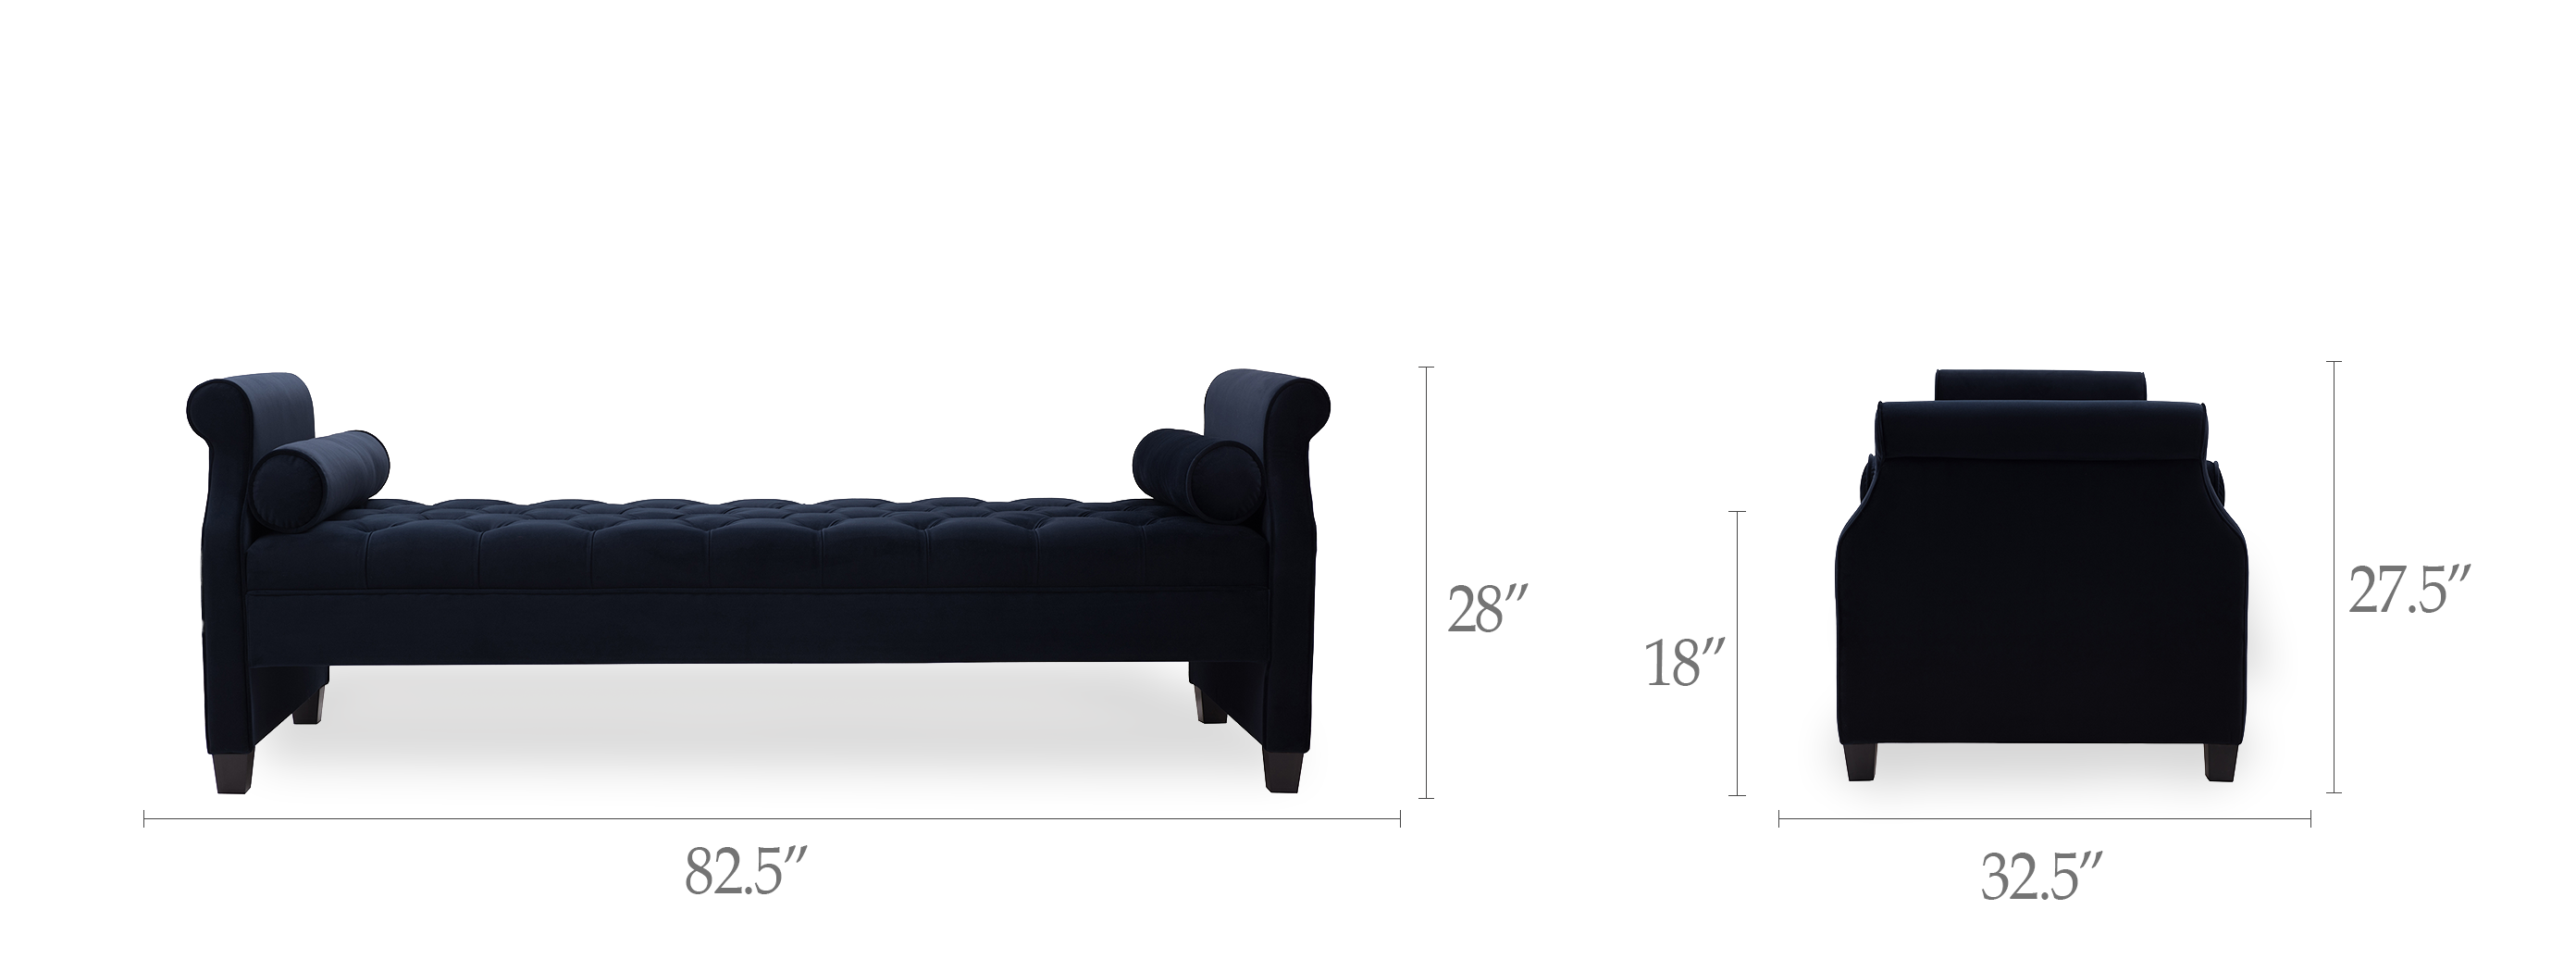 Eliza Upholstered Sofa Bed